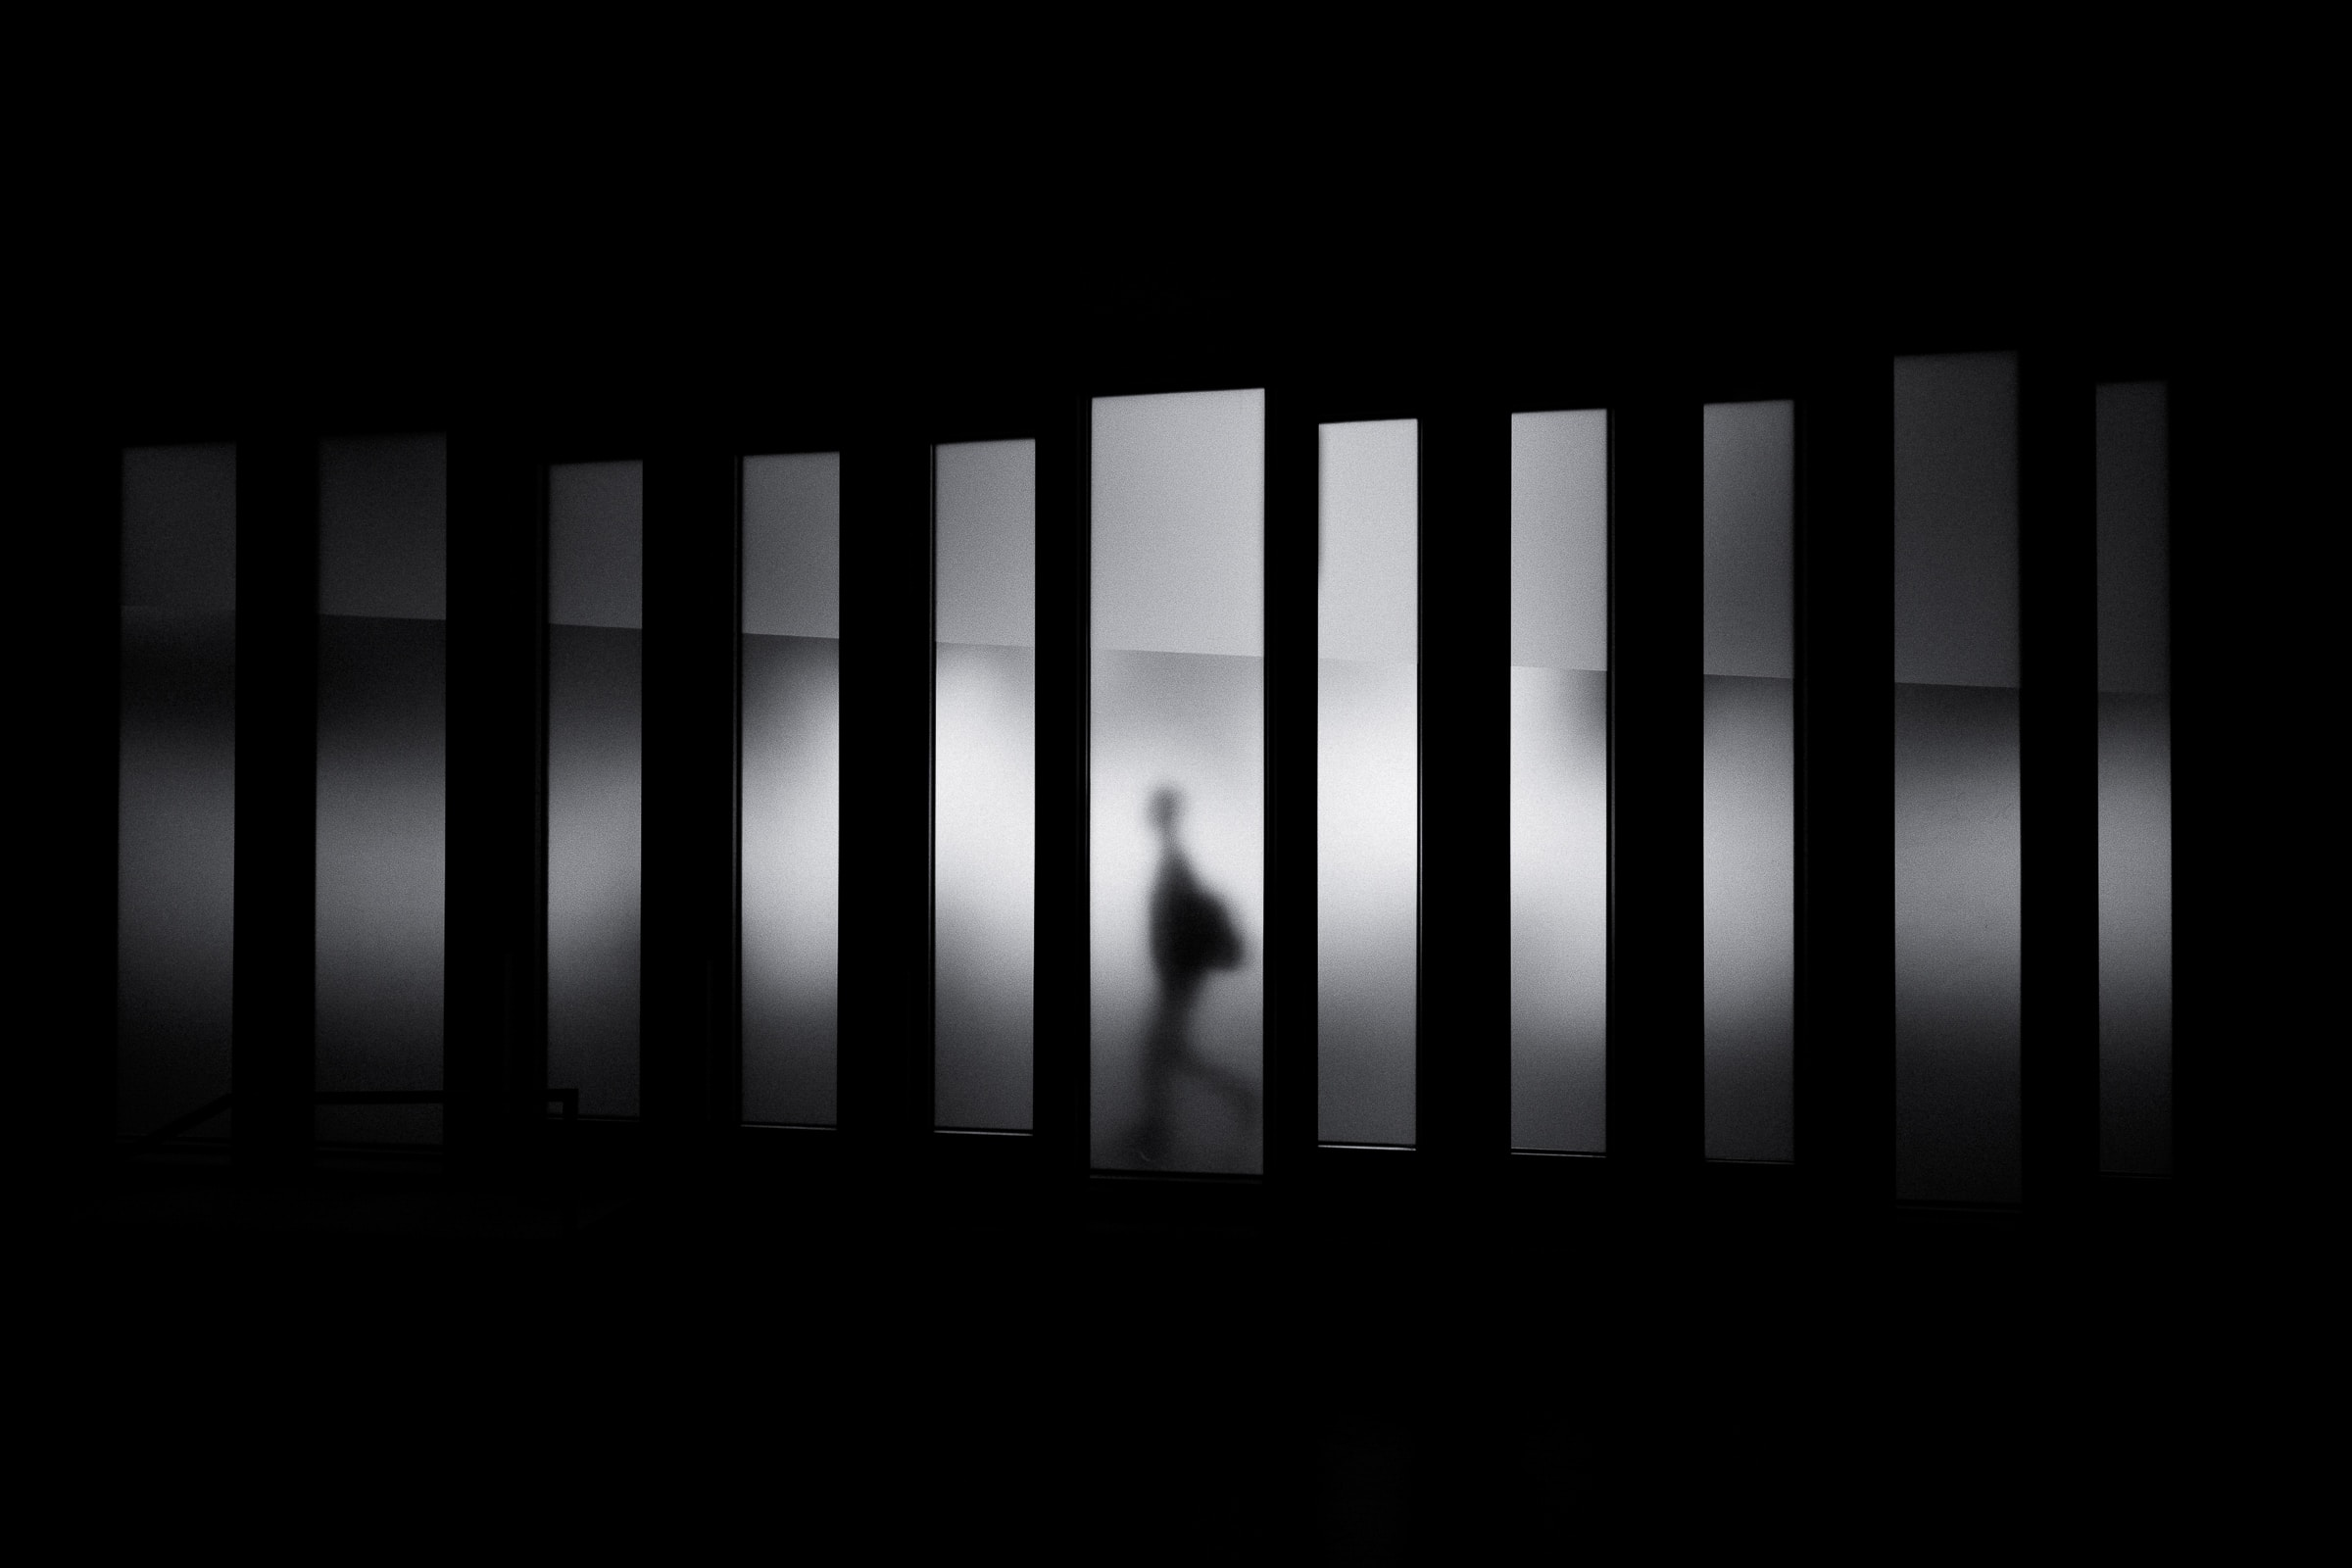 62496 Screensavers and Wallpapers Windows for phone. Download Windows, Dark, Silhouette, Darkness pictures for free